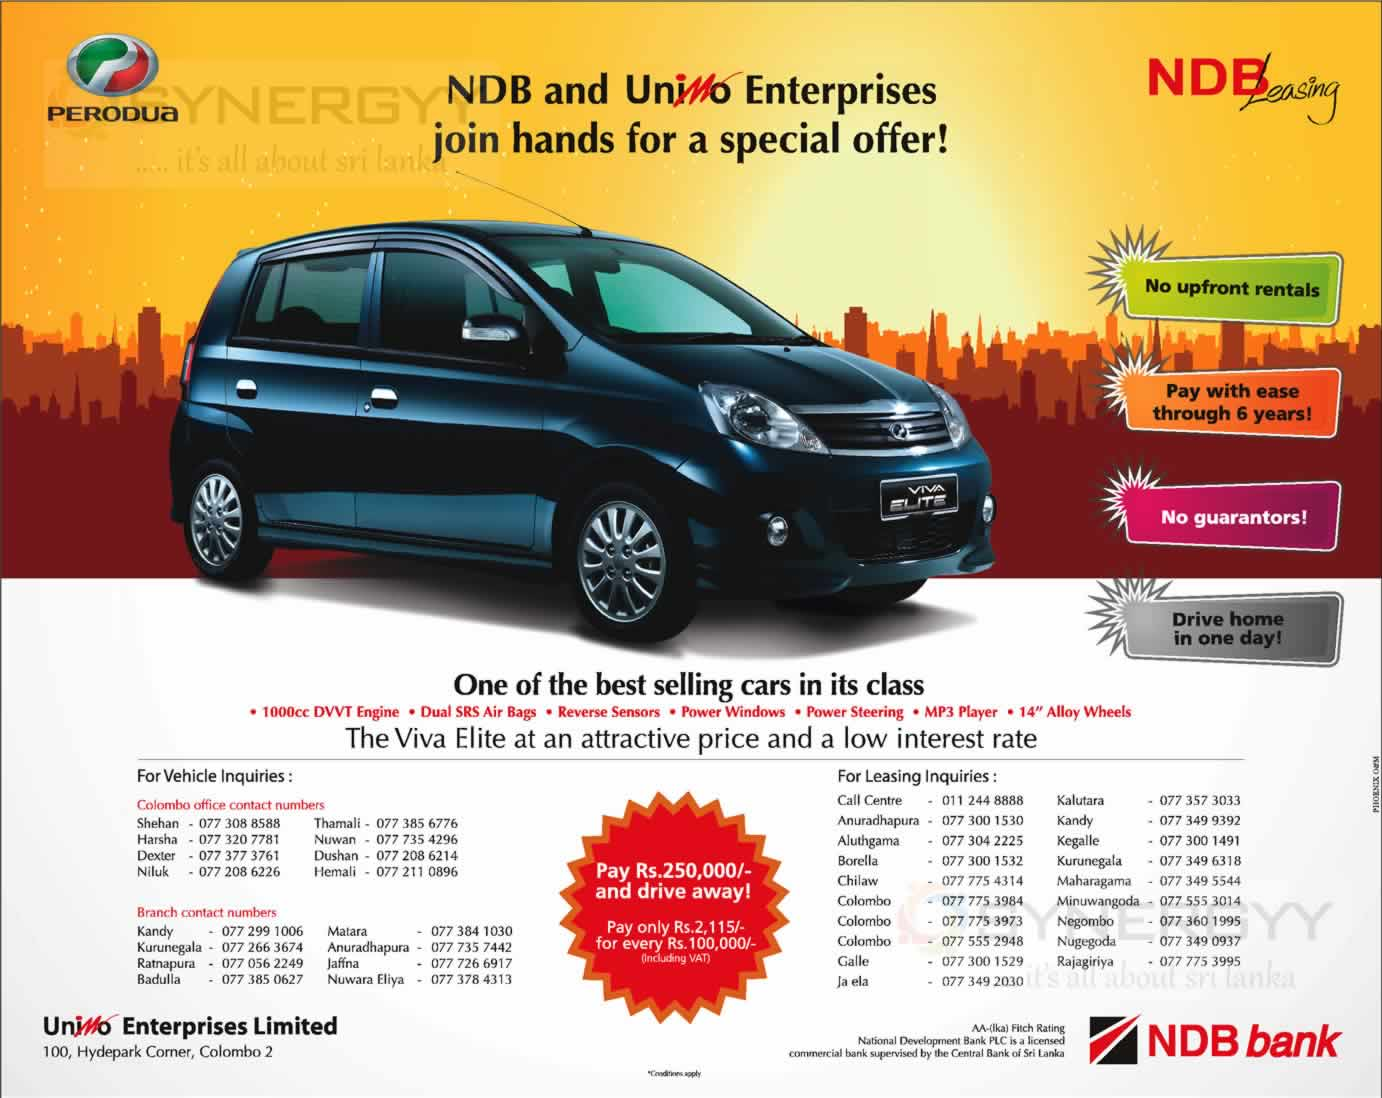 perodua viva elite leasing option with ndb leasing synergyy. Black Bedroom Furniture Sets. Home Design Ideas